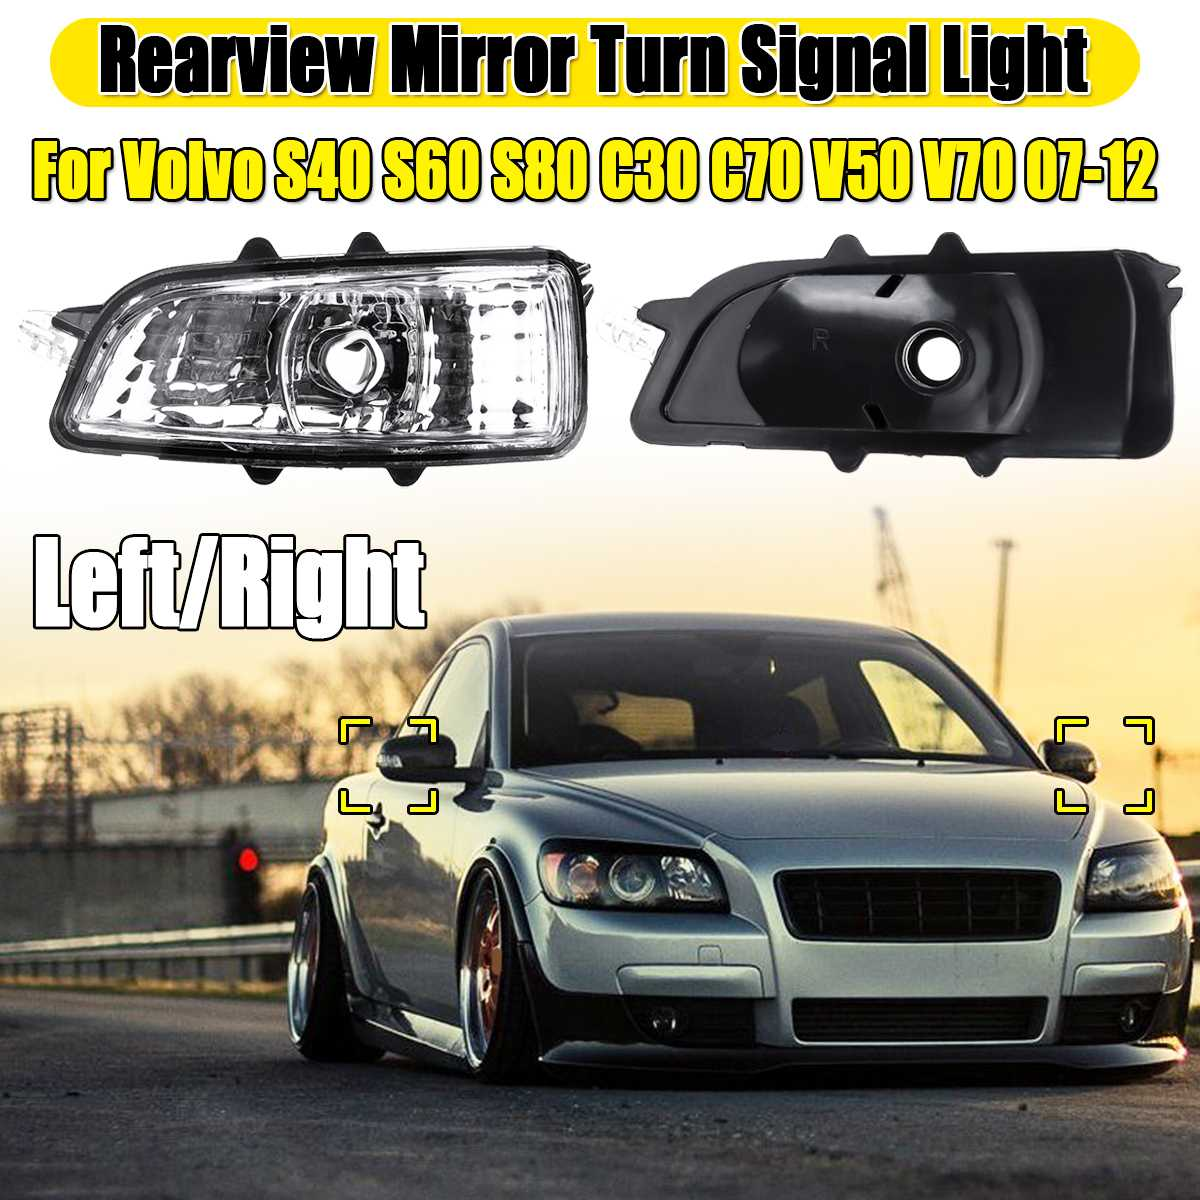 Left/Right Rearview Mirror <font><b>Lights</b></font> For <font><b>Volvo</b></font> <font><b>S40</b></font> S60 S80 C30 C70 V50 V70 Turn Signal <font><b>Light</b></font> Rearview Mirror <font><b>Light</b></font> Without Bulb image